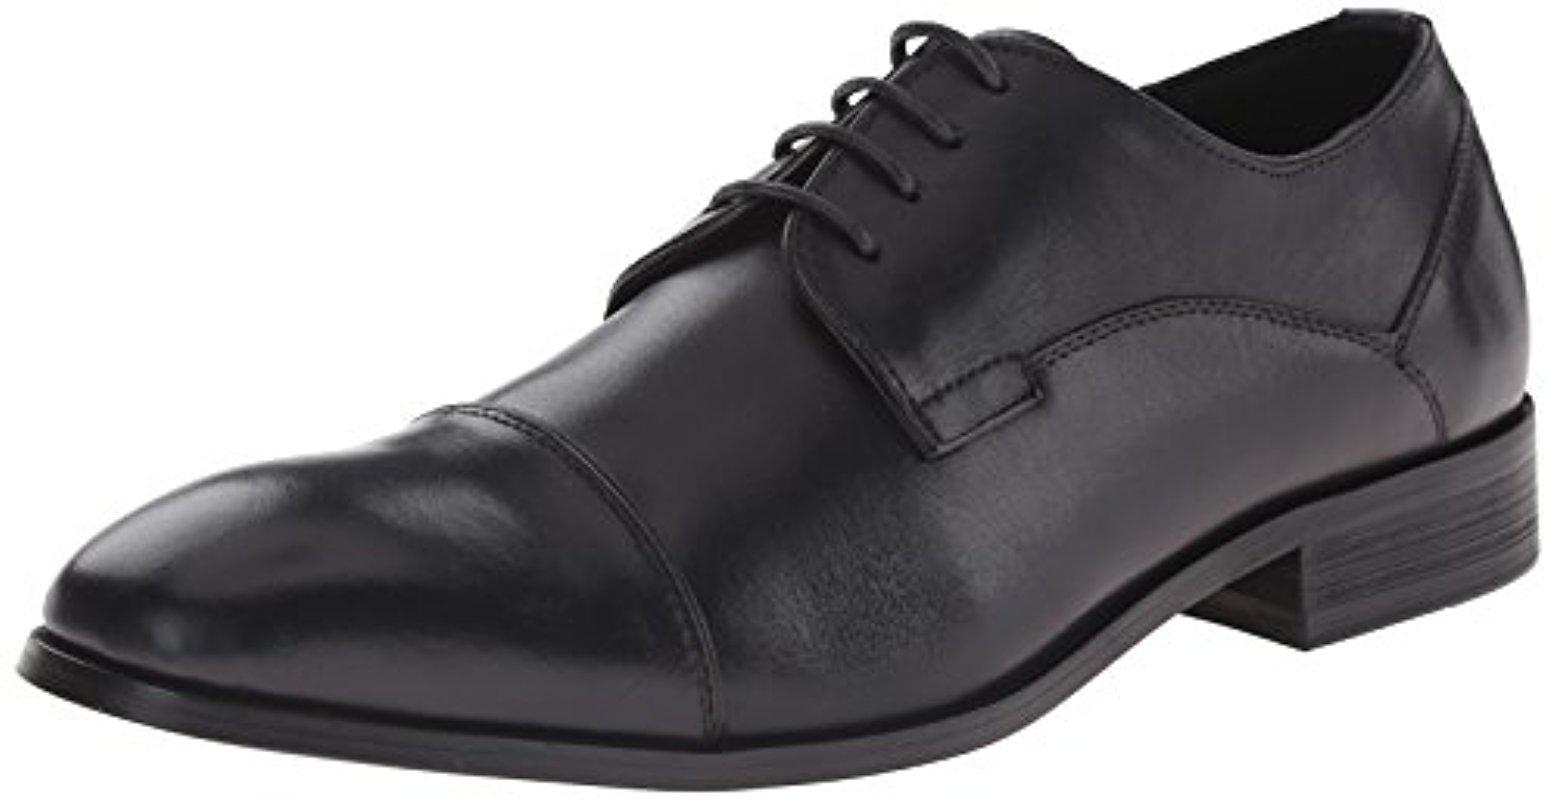 Kenneth Cole Reaction. Men's Blue Have It All Oxford Shoe